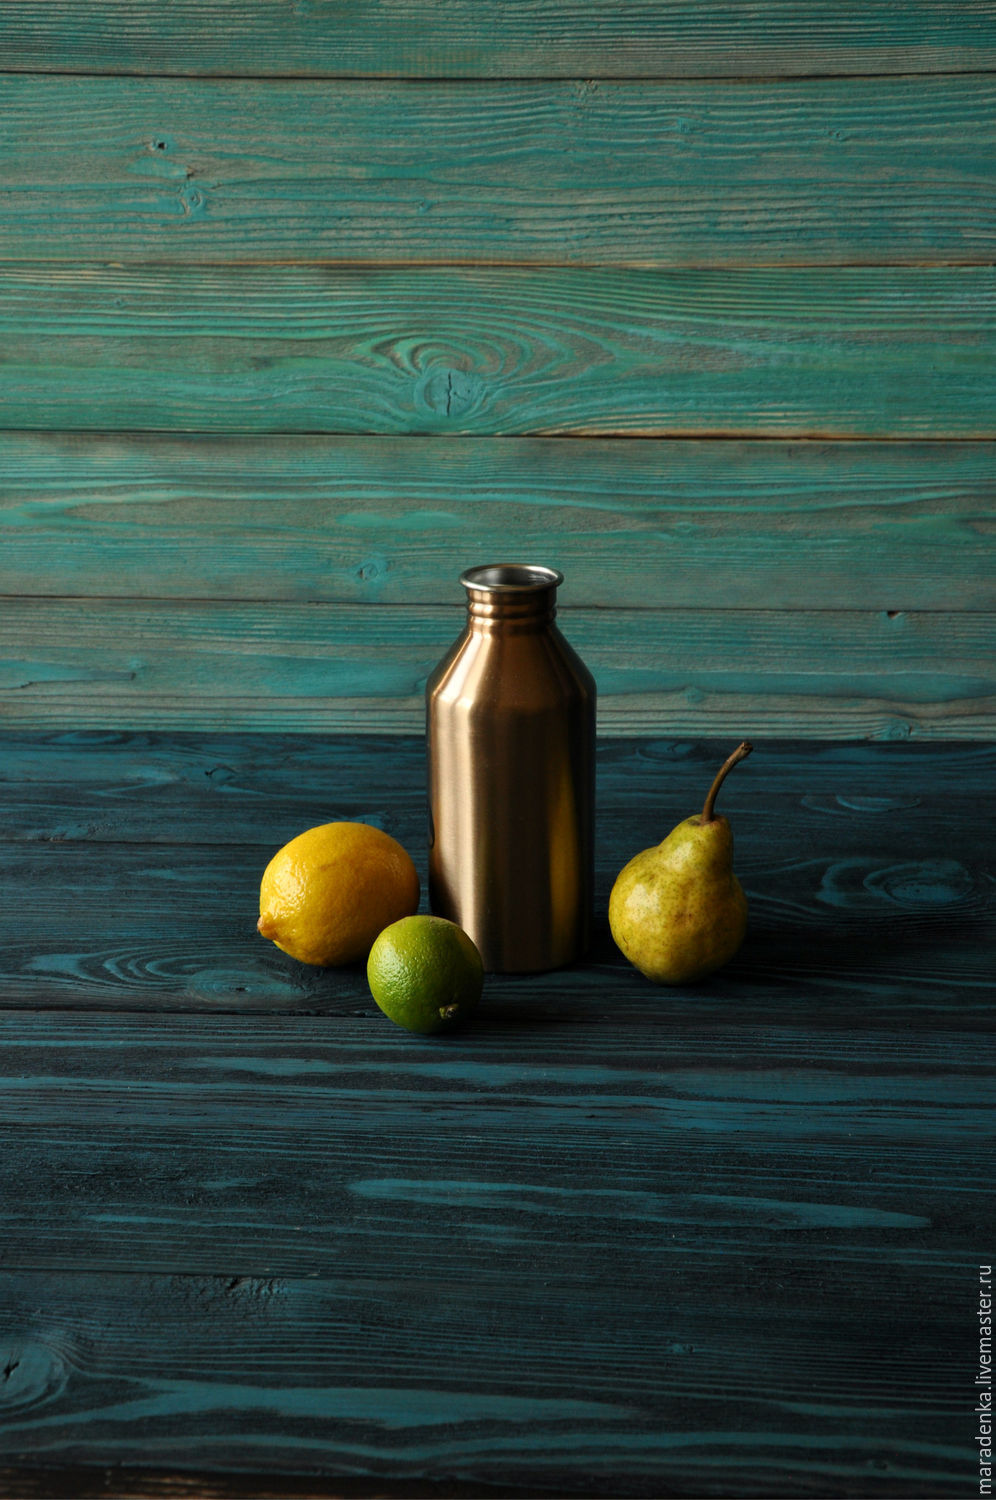 Fotofone. Fotofone wooden. Wooden fotofone. Fotofone of wood. Fotofone for instagram. Fotofone rental. Background for photo shoots. potion. Wall panel loft.